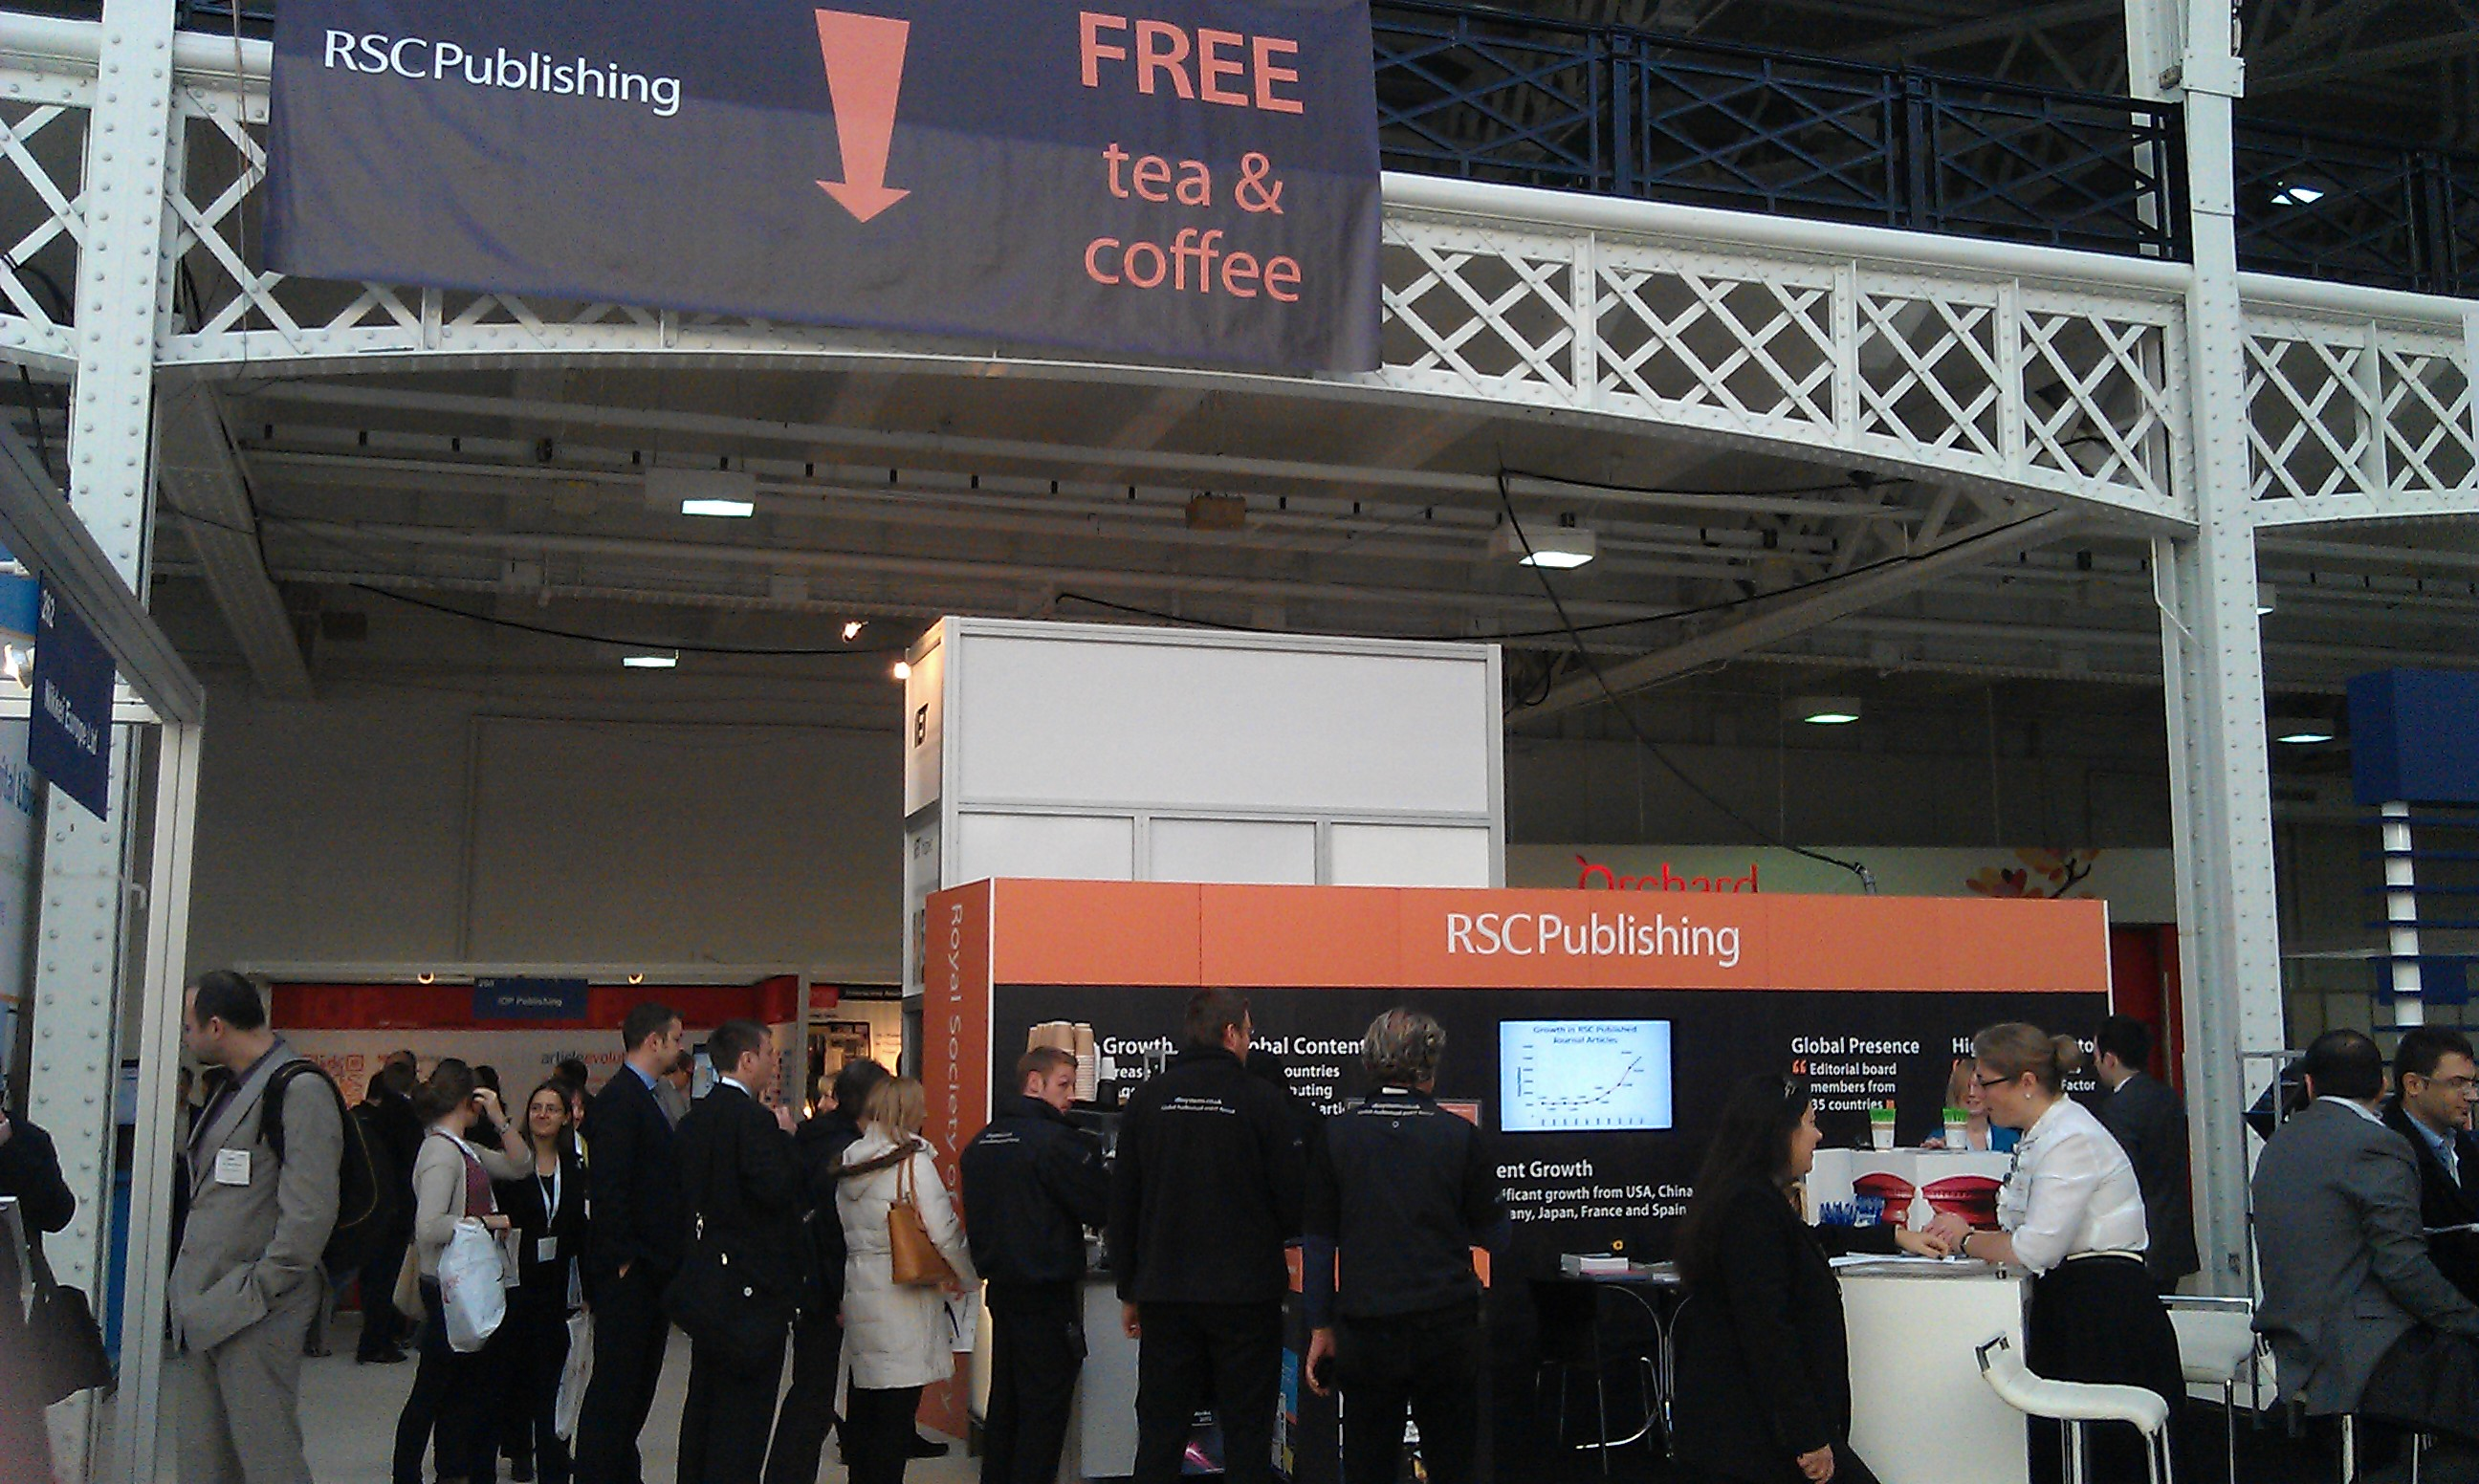 Online Information Stand free tea and coffee